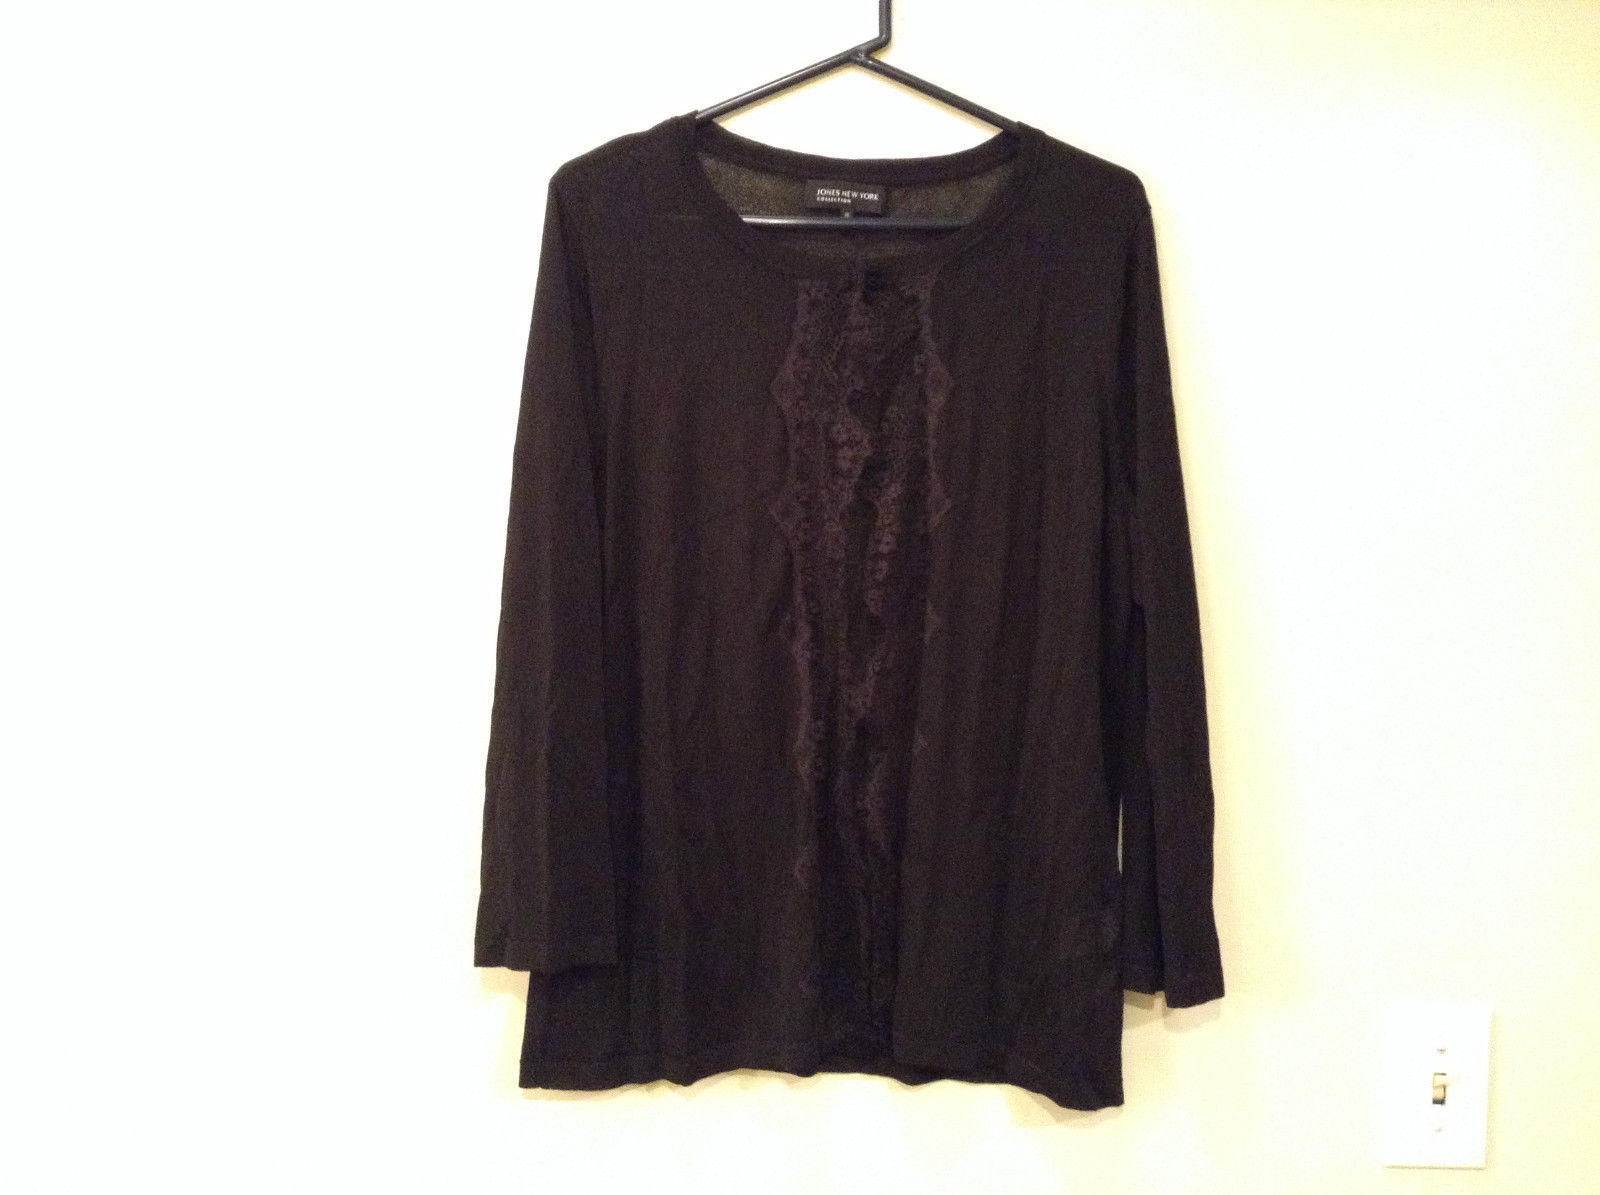 Size XL Black with Lace Trim on Front Long Sleeves Blouse Jones New York